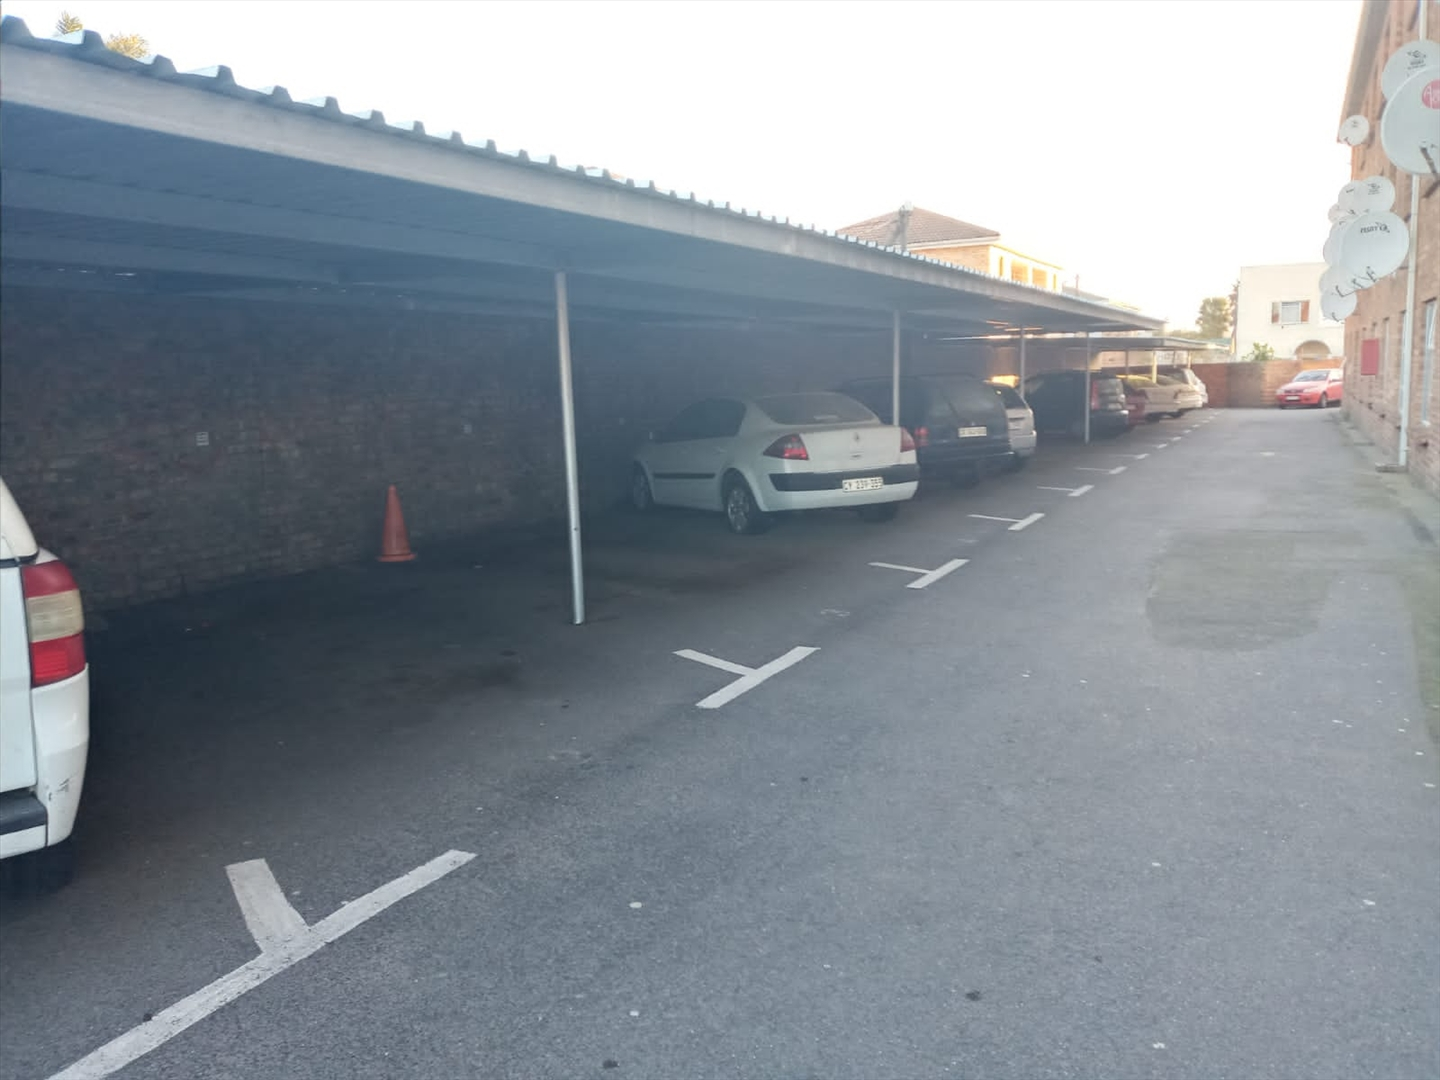 Covered parking bays